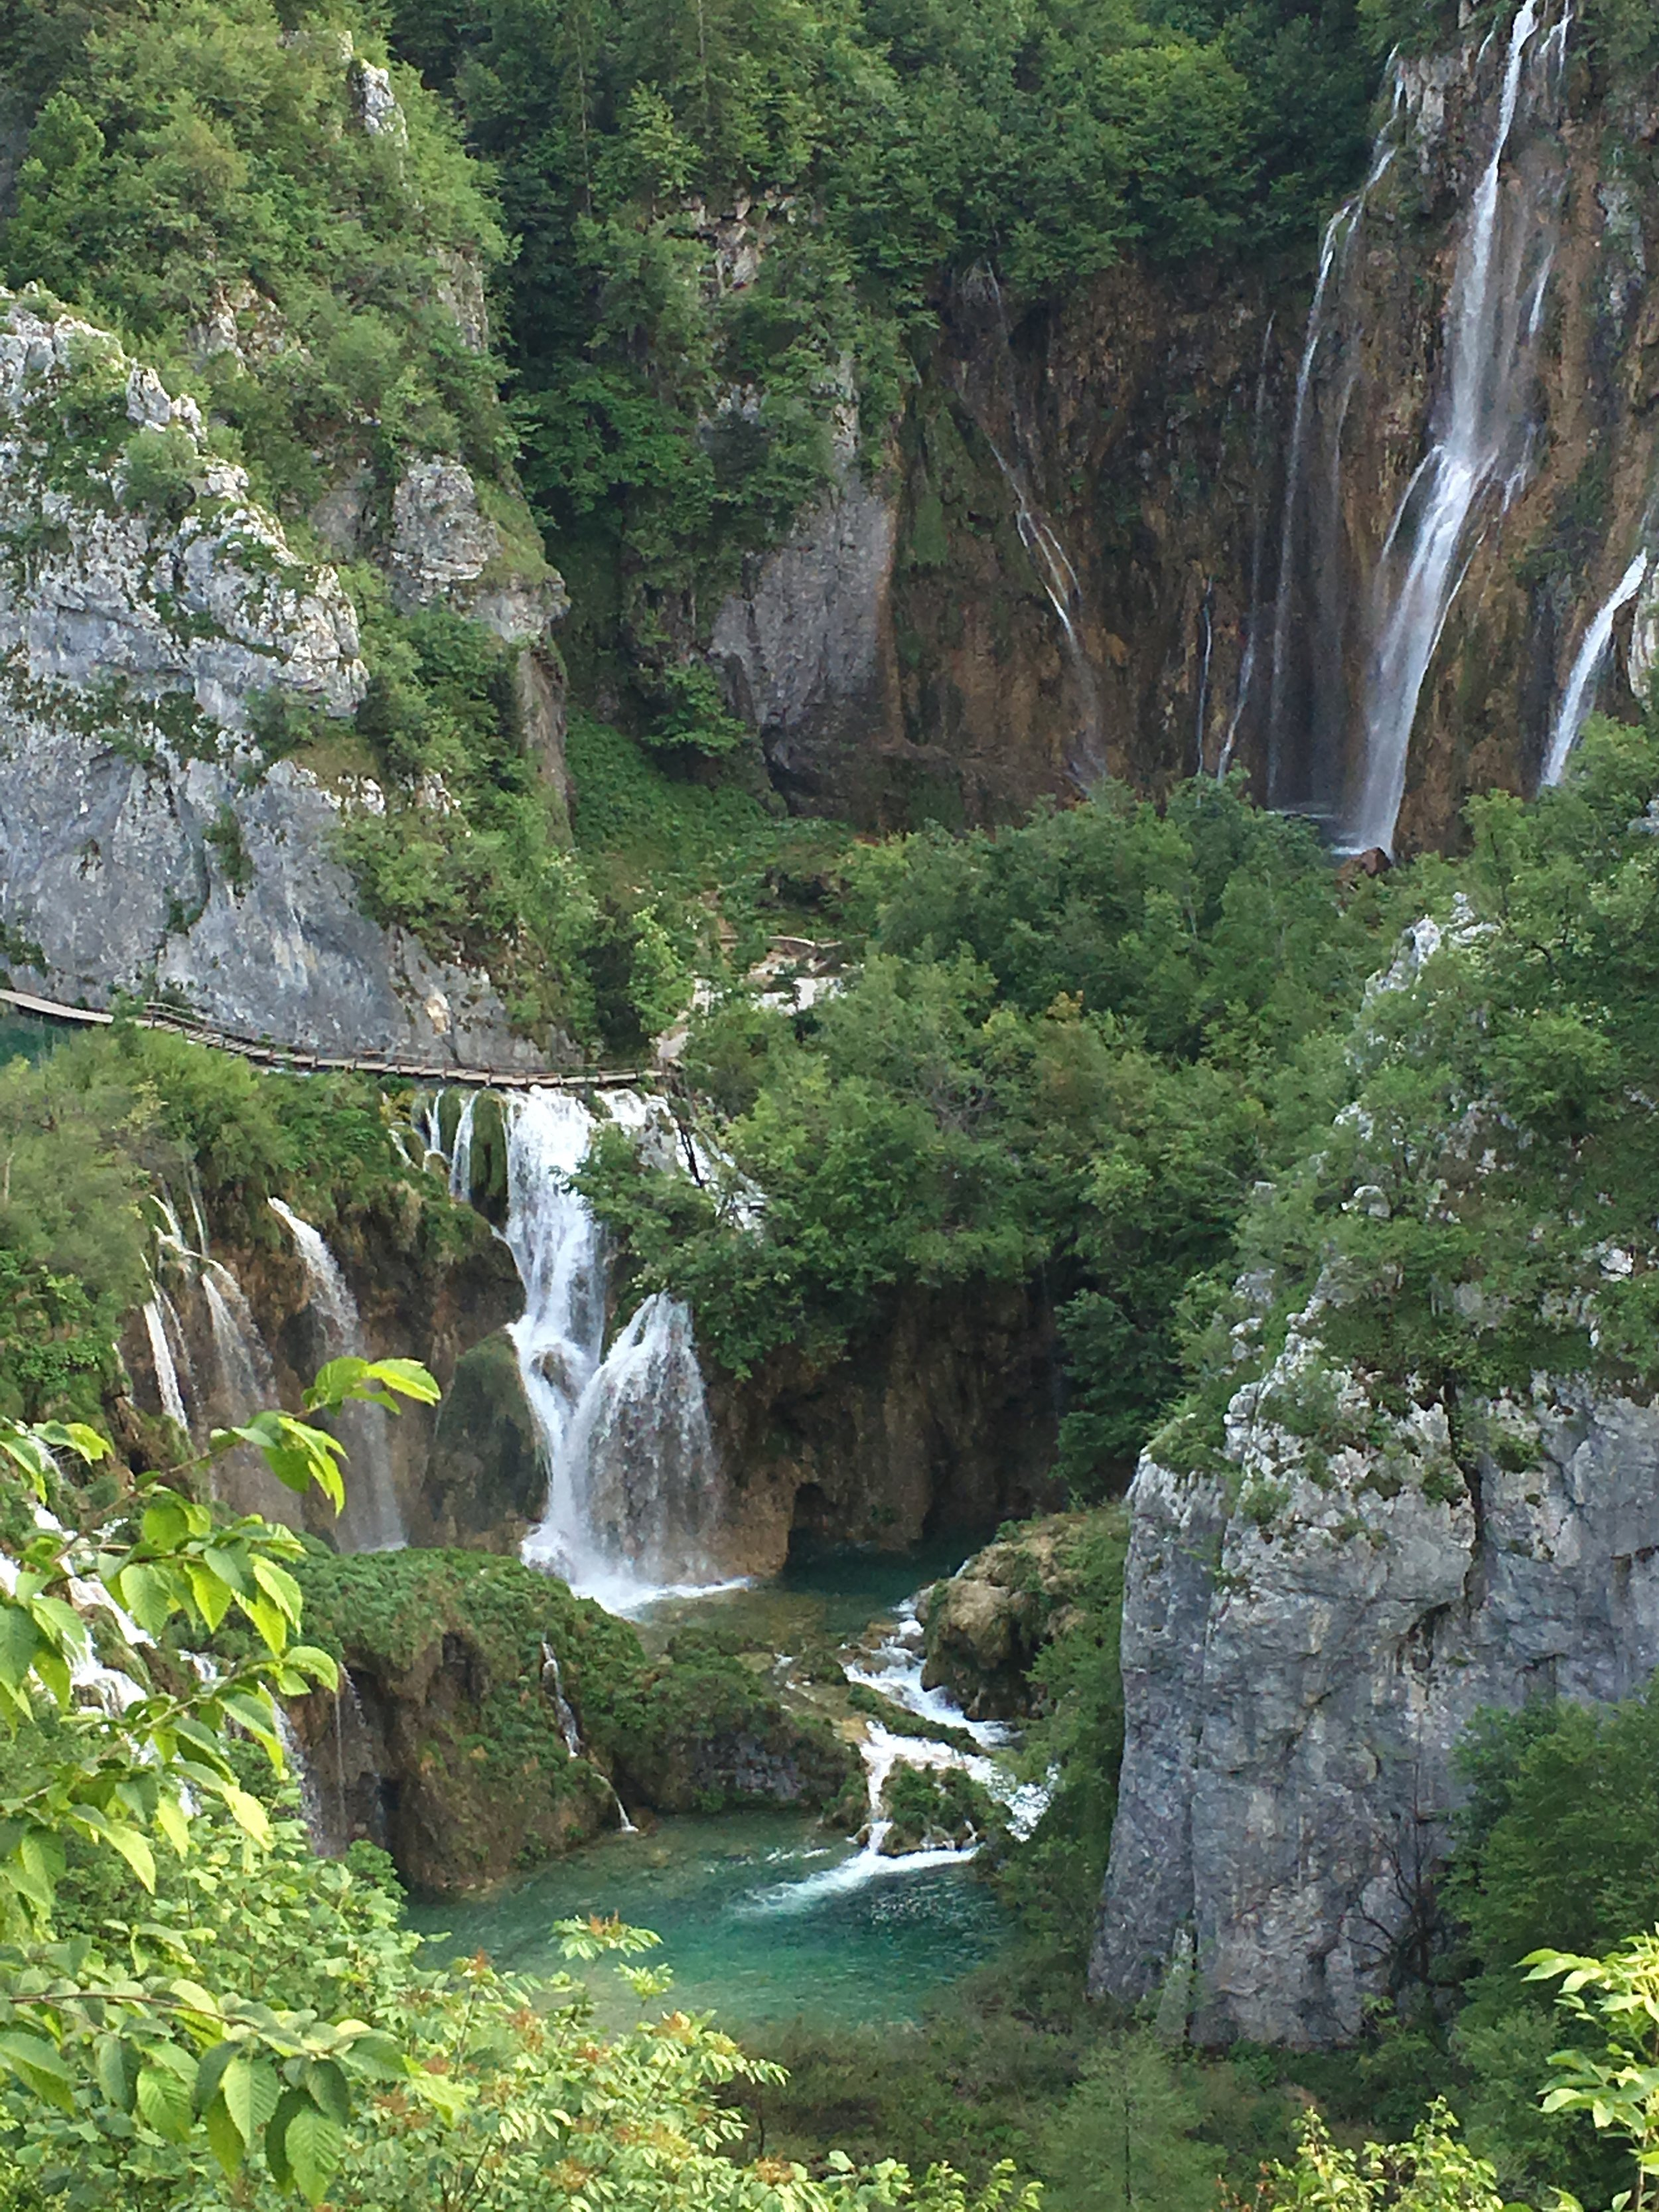 A spectacular view of Plitvice lakes.